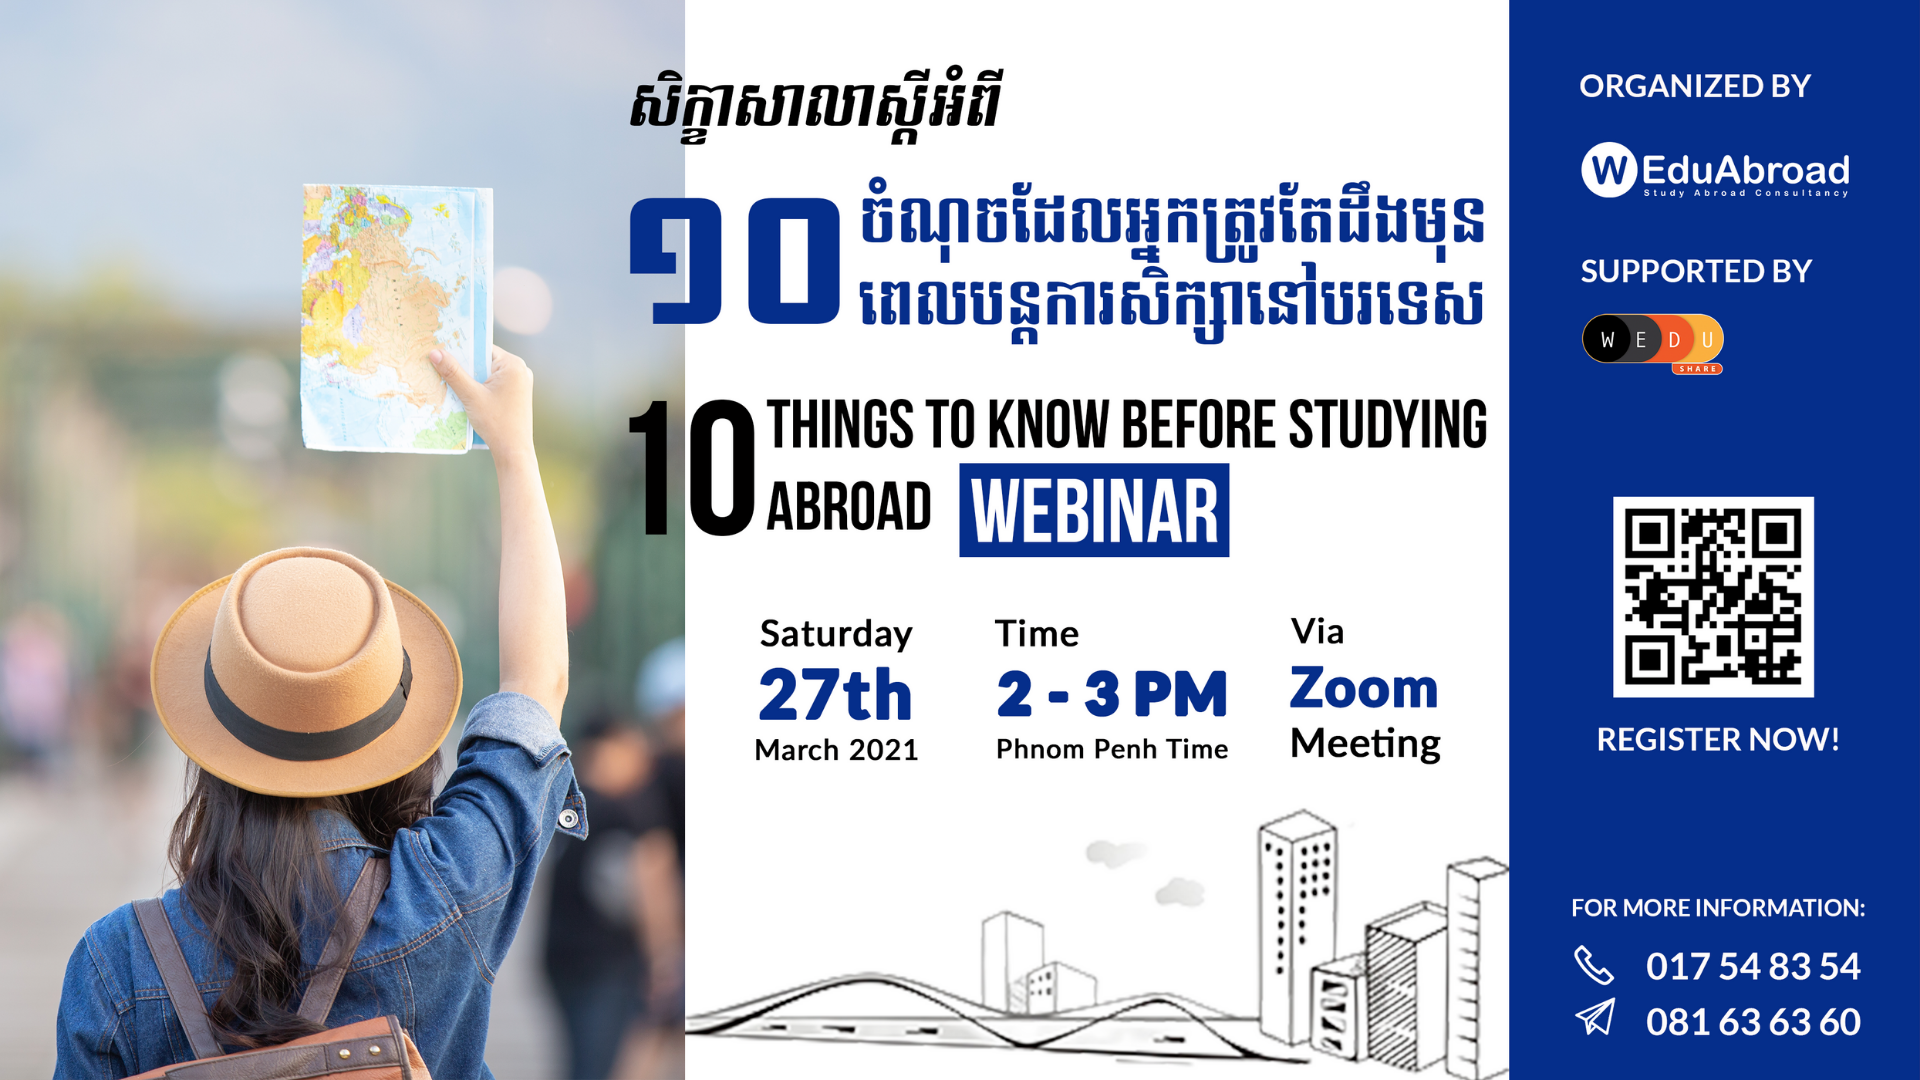 10 Things to Know Before Studying Abroad Webinar